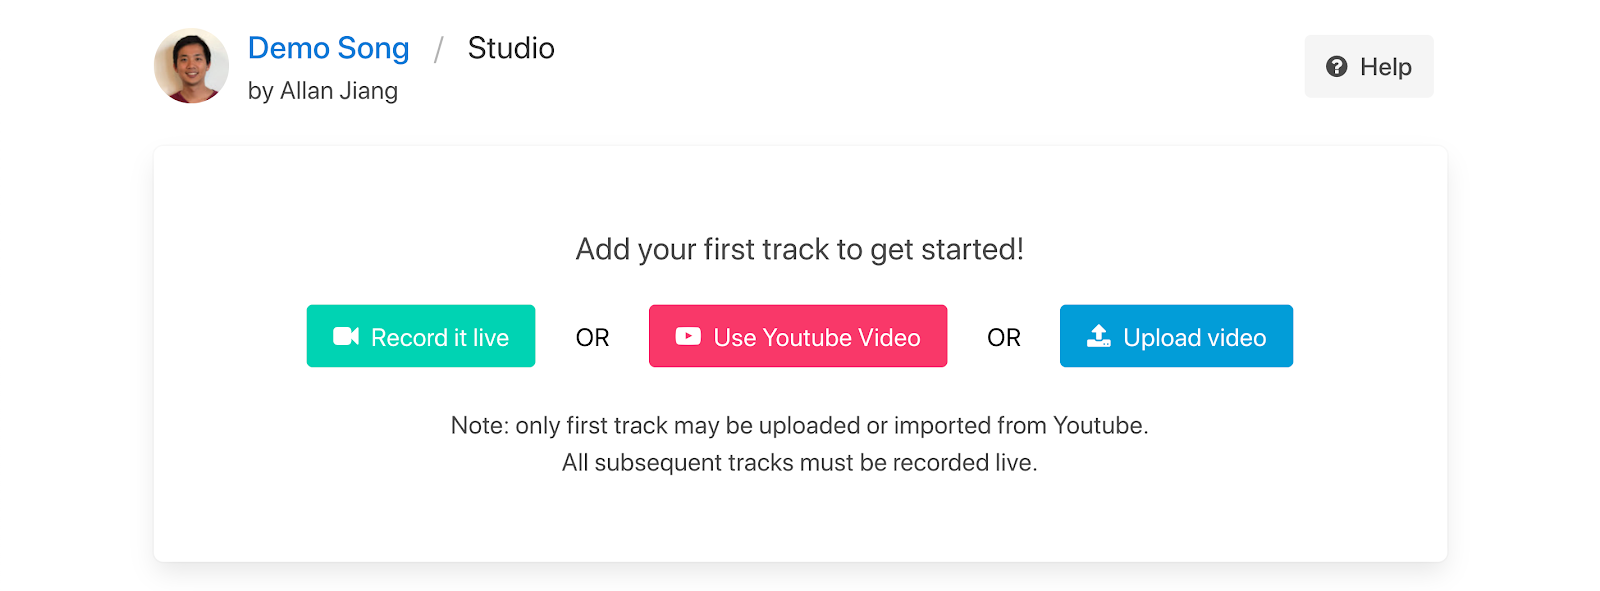 add first track options